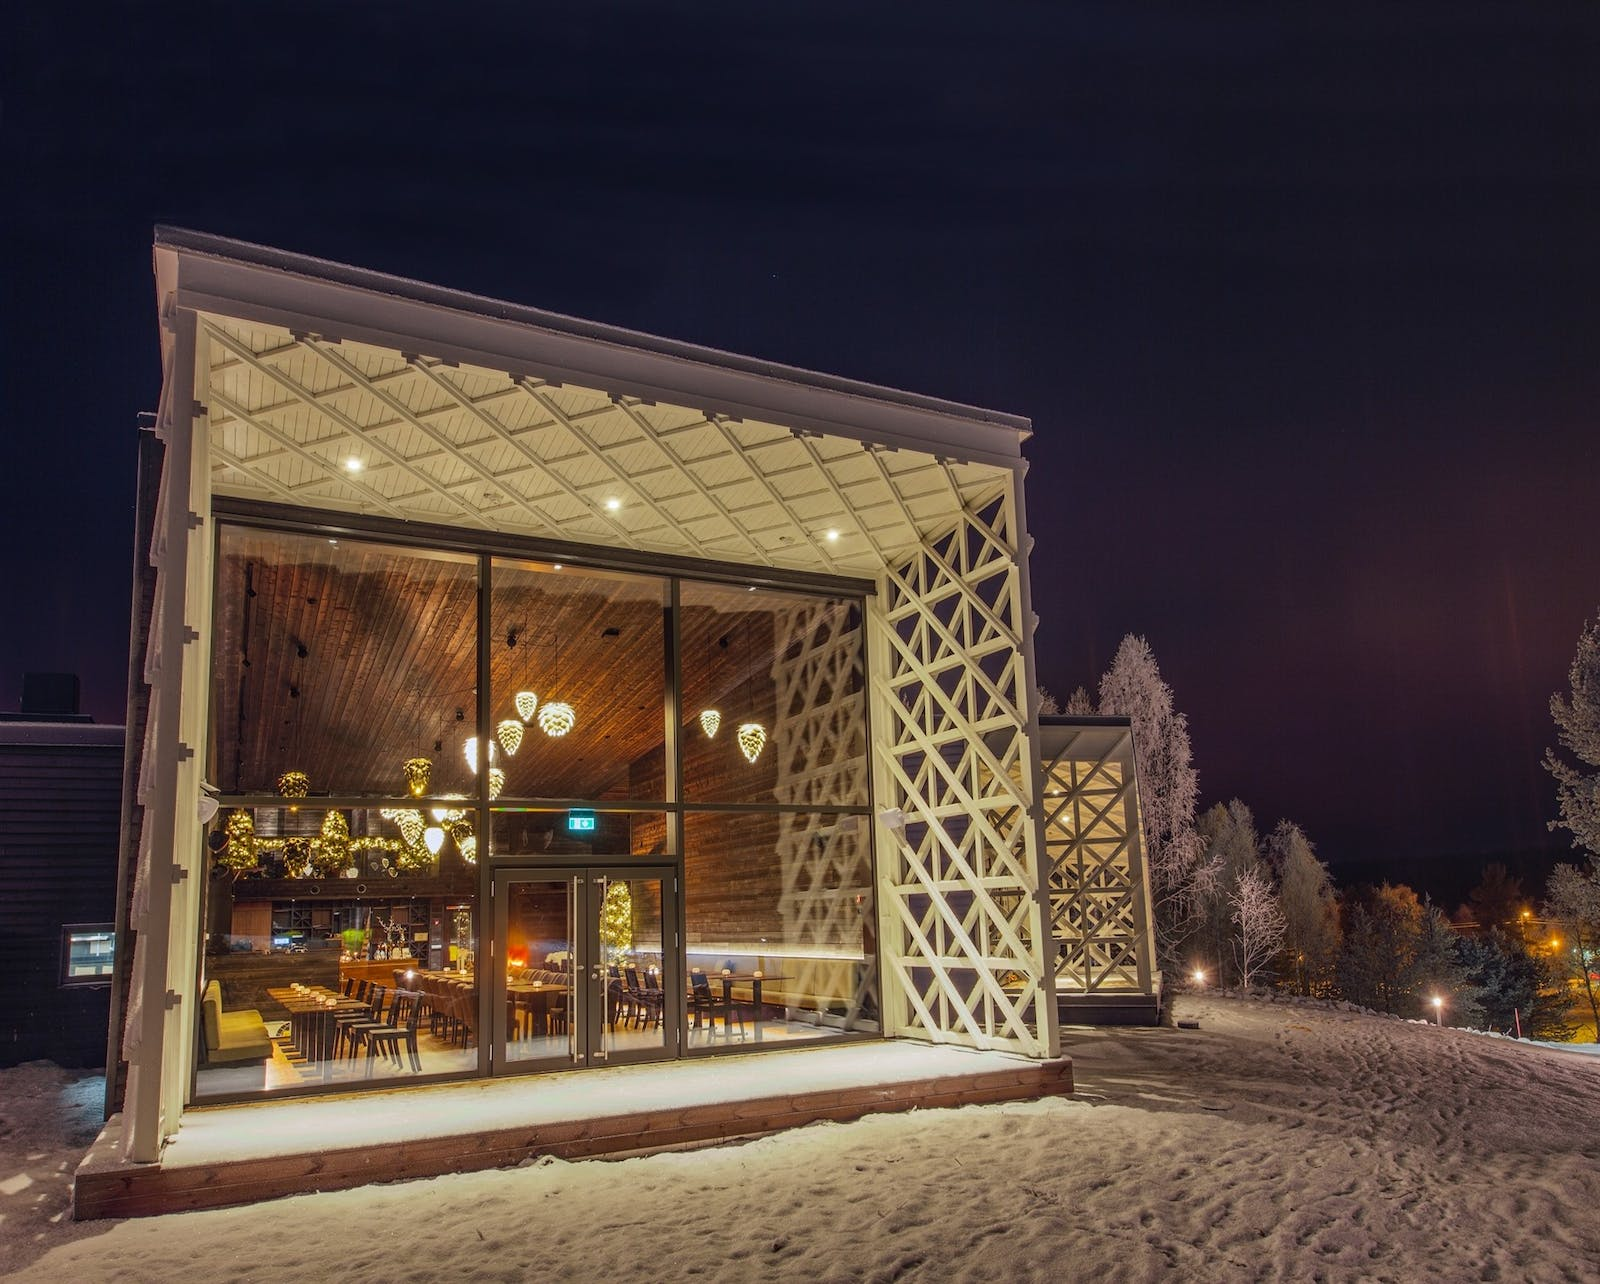 Rakas Restaurant and Bar, Arctic Treehouse Hotel, Finland